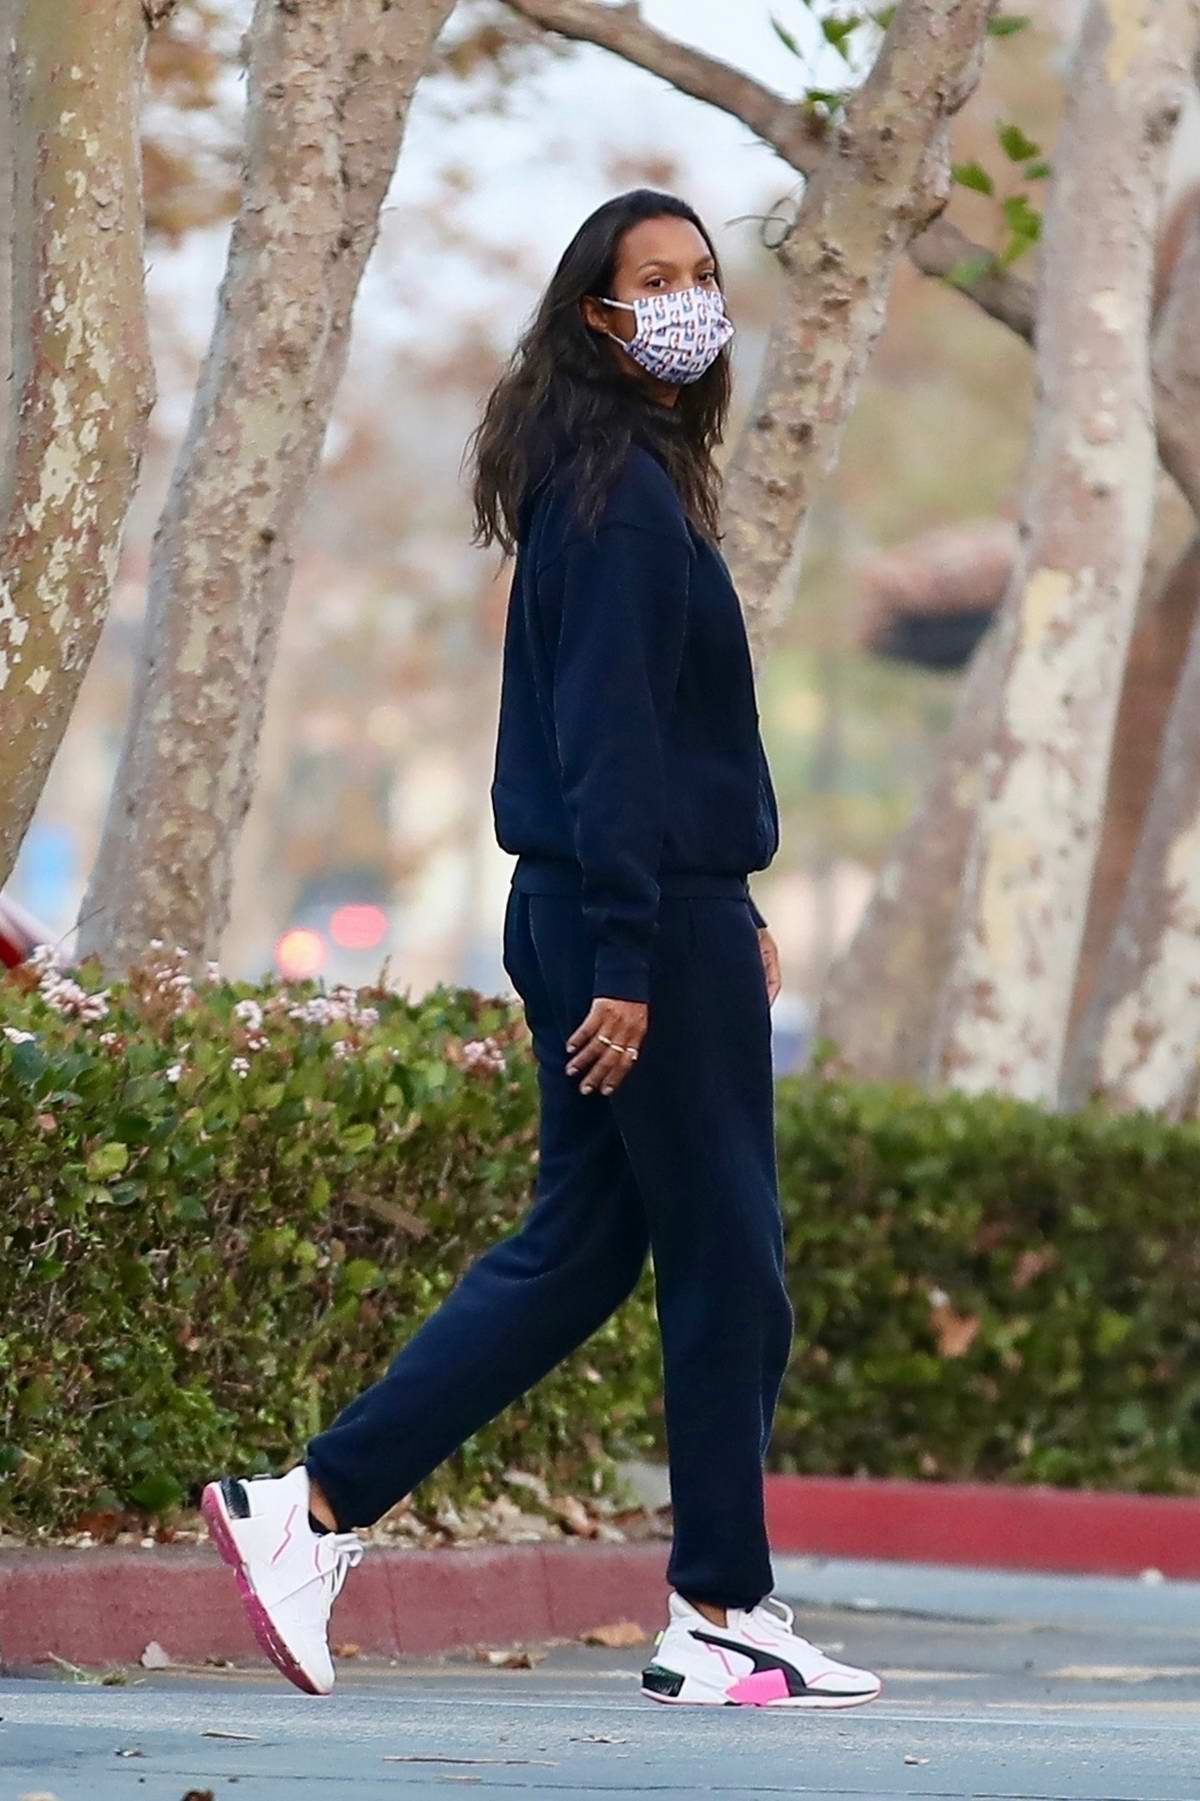 Lais Ribeiro keeps it comfy in sweats while making a run to the market in Malibu, California